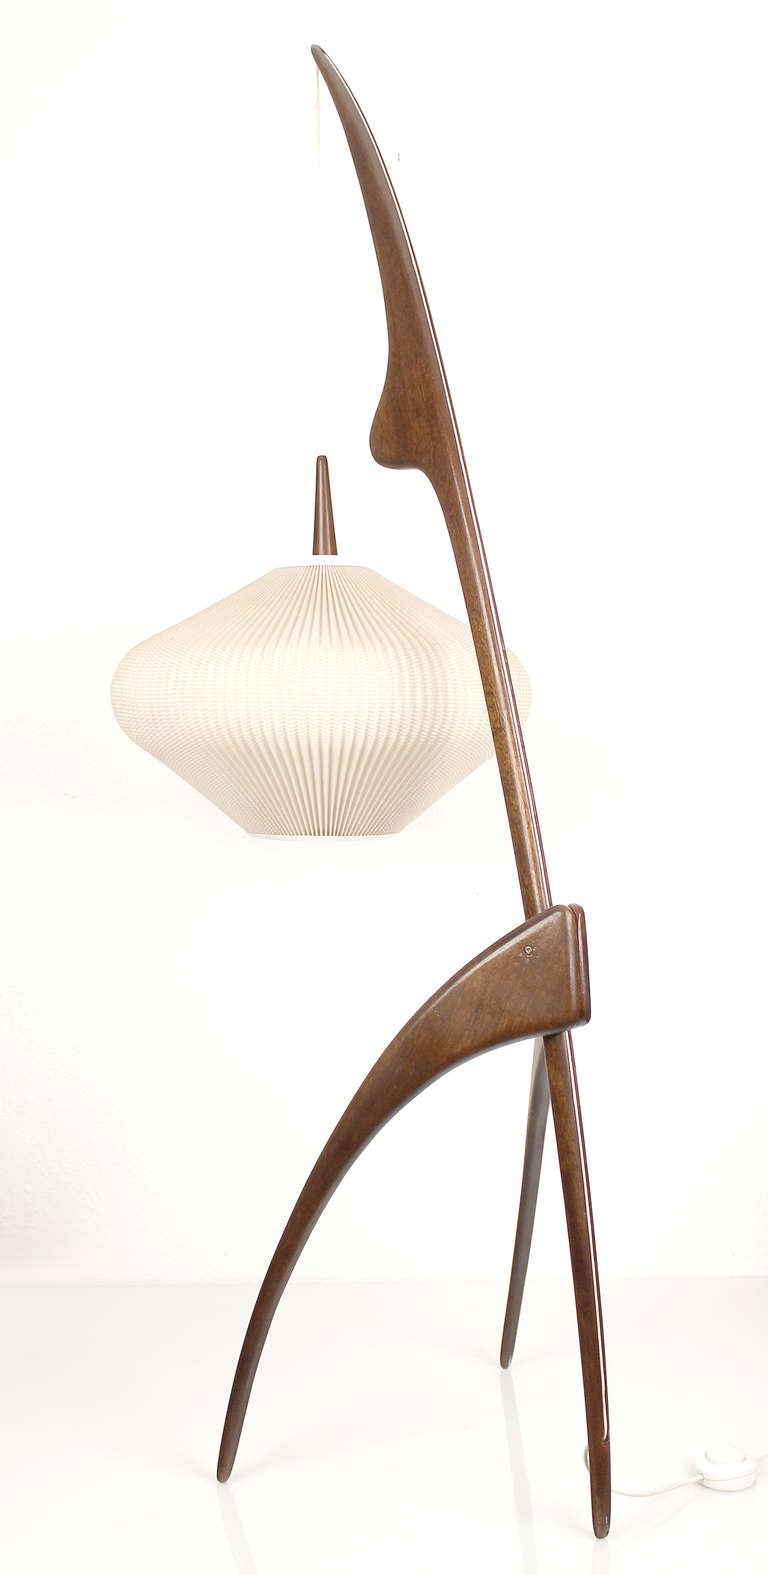 french mid century j rispal praying mantis floor lamp at 1stdibs. Black Bedroom Furniture Sets. Home Design Ideas